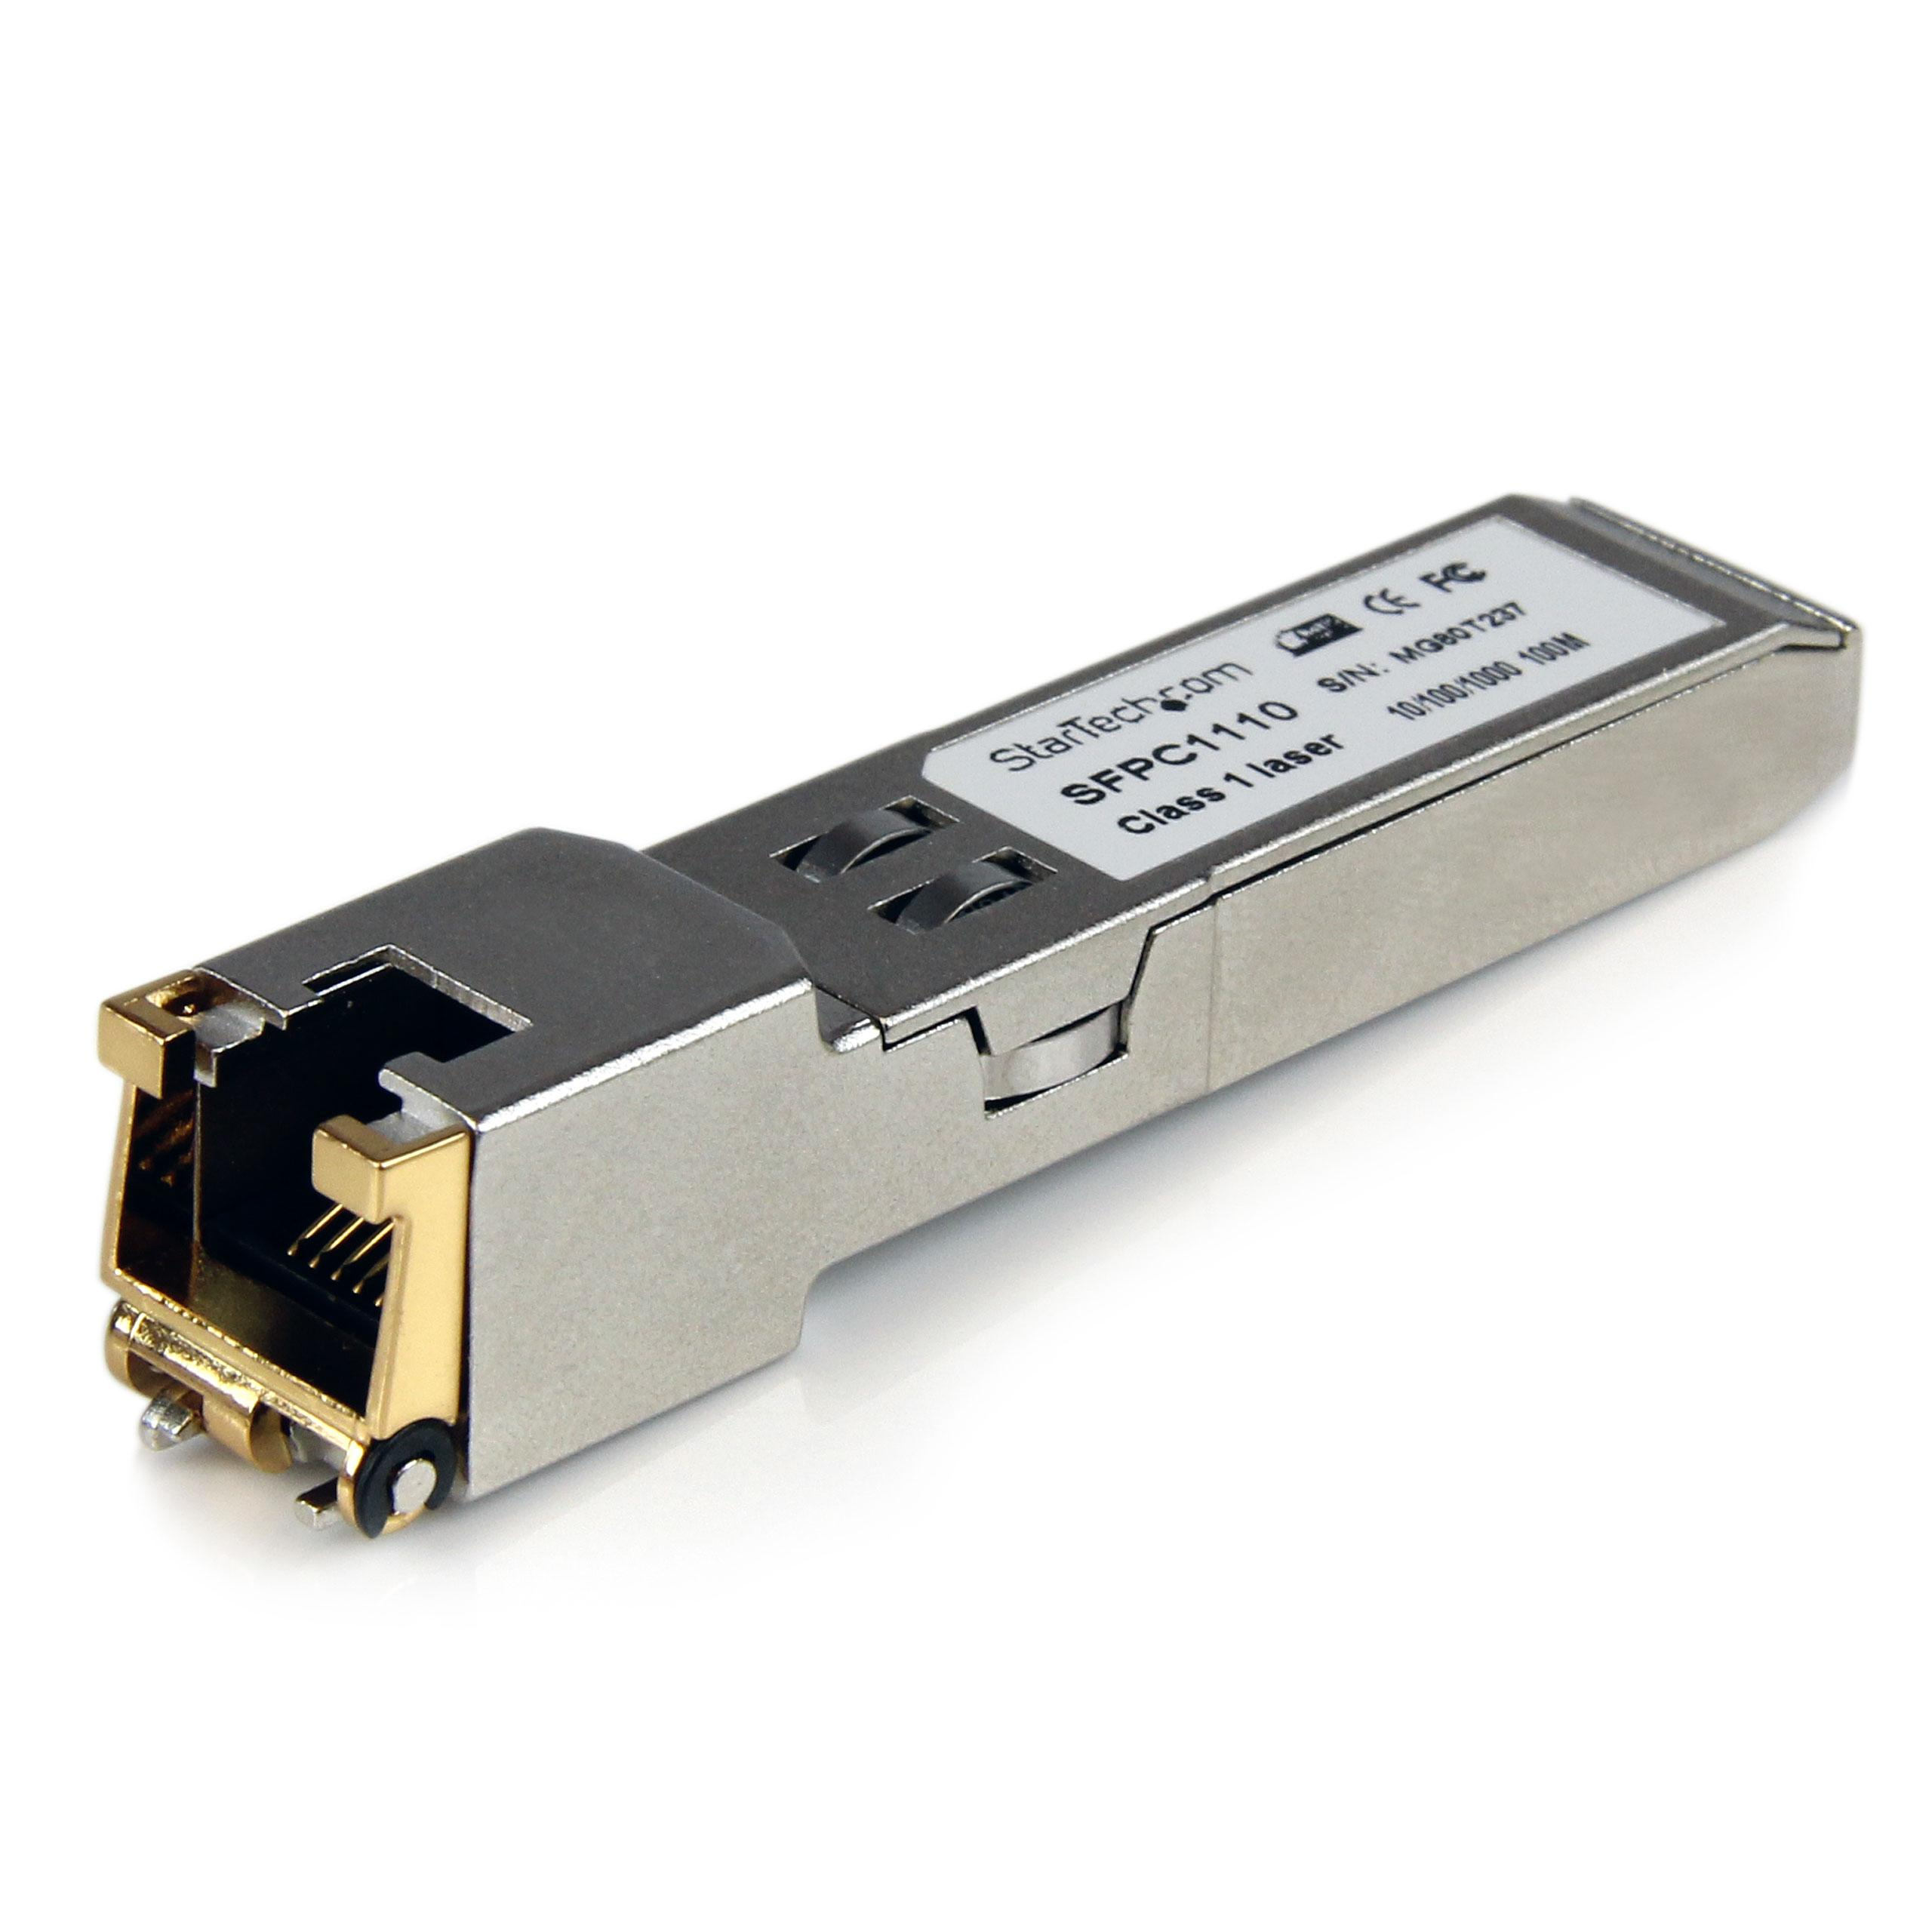 Amazon.com: StarTech.com Cisco SFP-GE-T Compatible